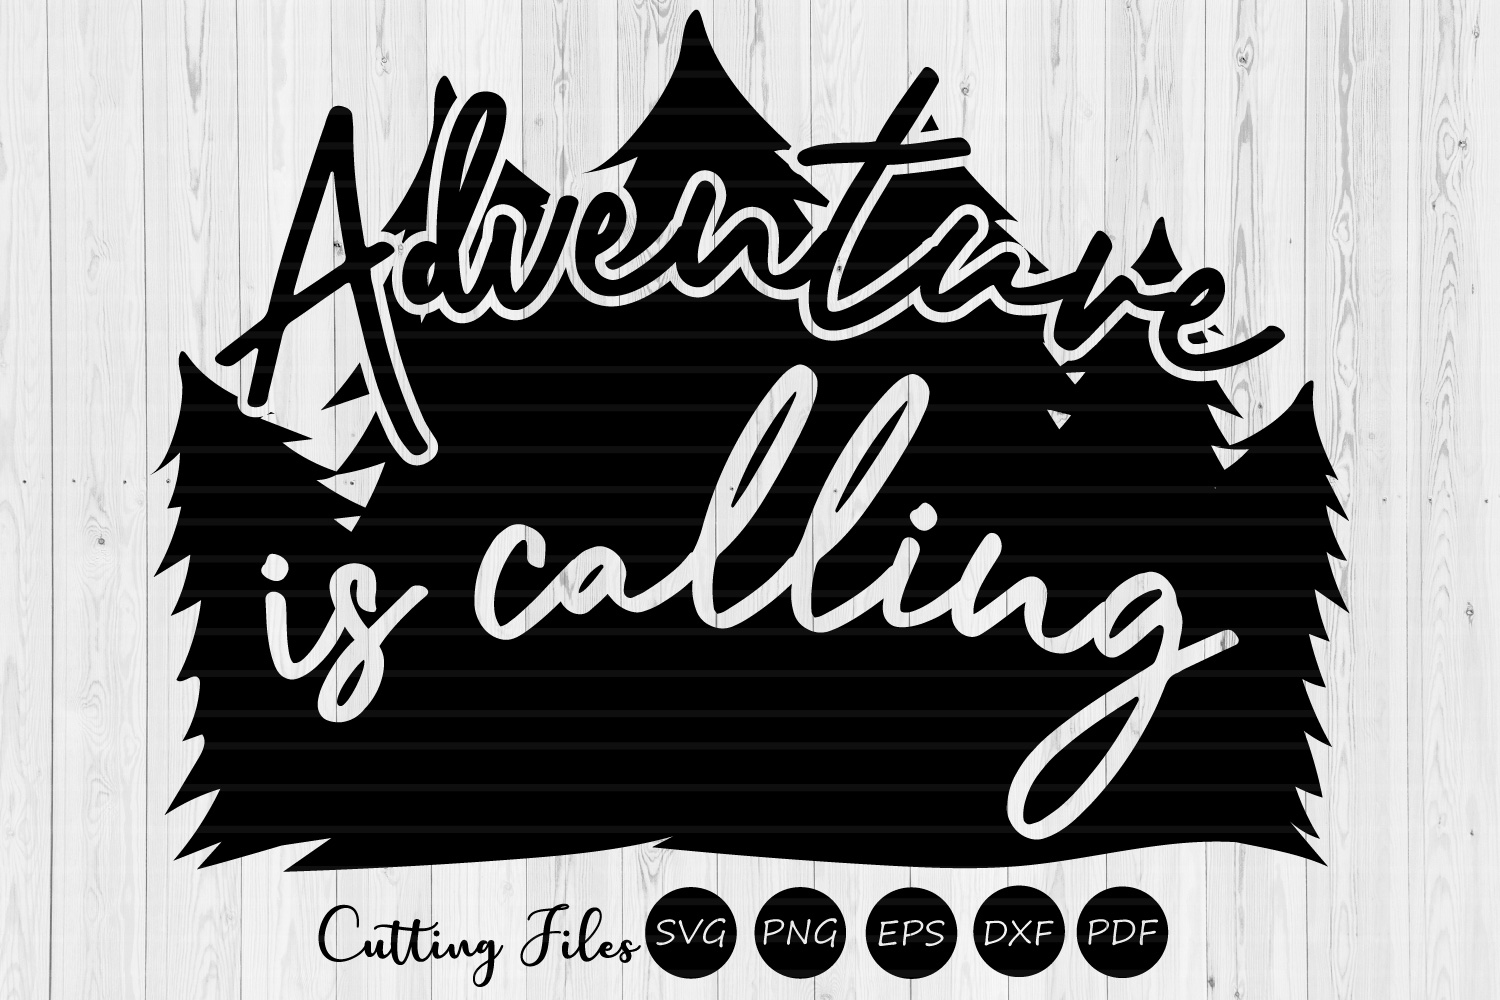 Adventure Awaits Camping Svg Graphic By Hd Art Workshop Creative Fabrica